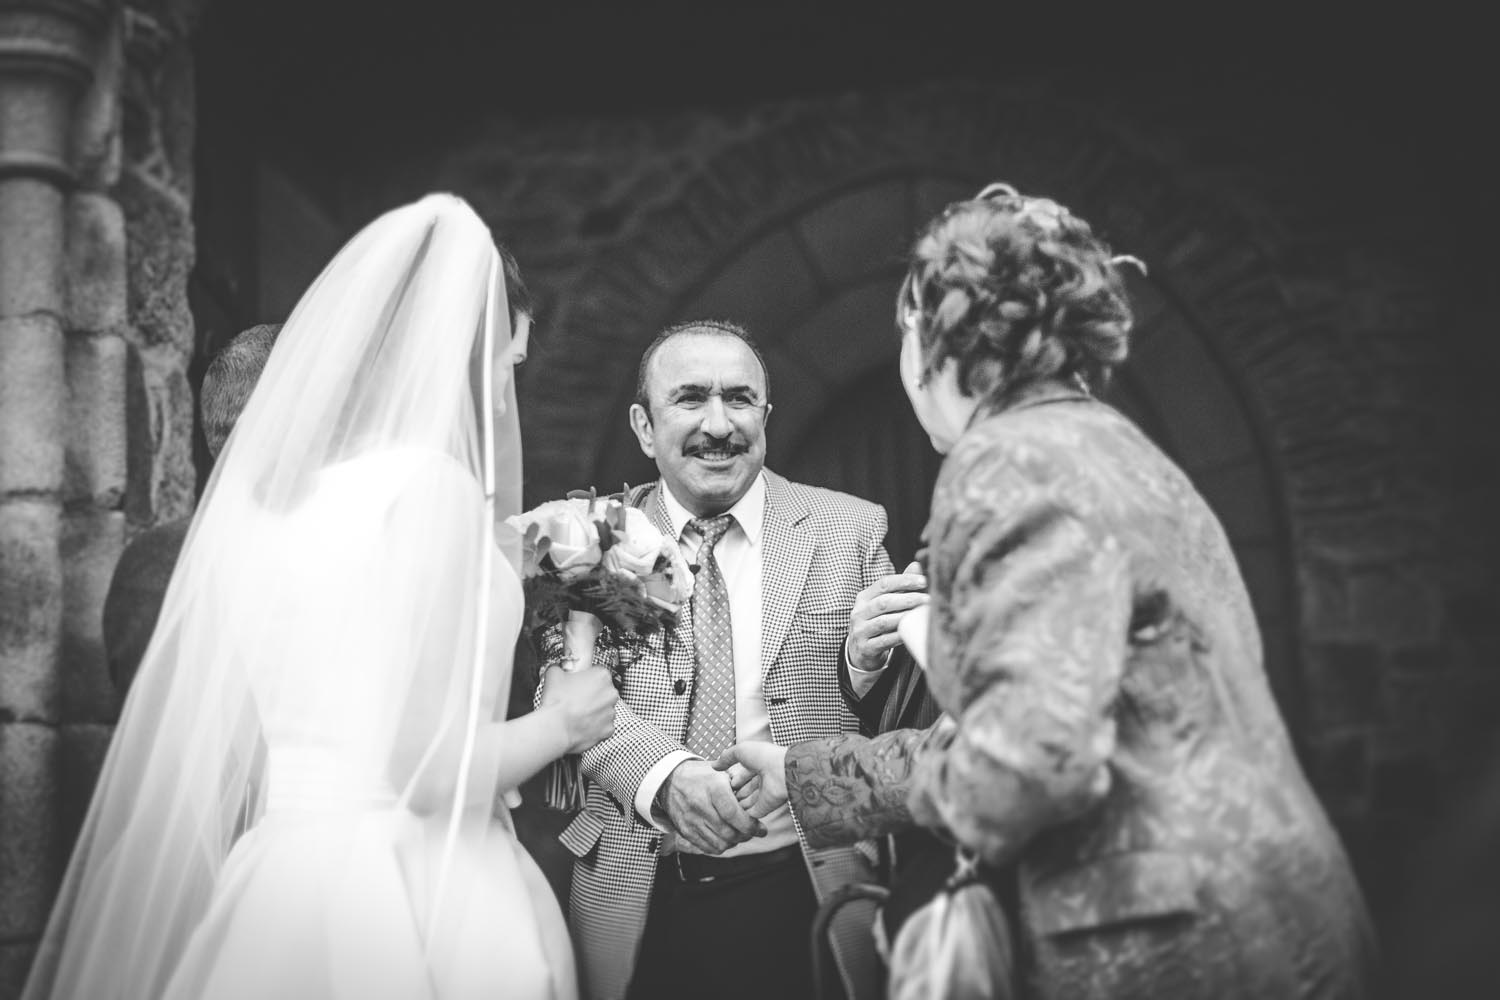 Step House wedding photographer Carlow Borris067.jpg